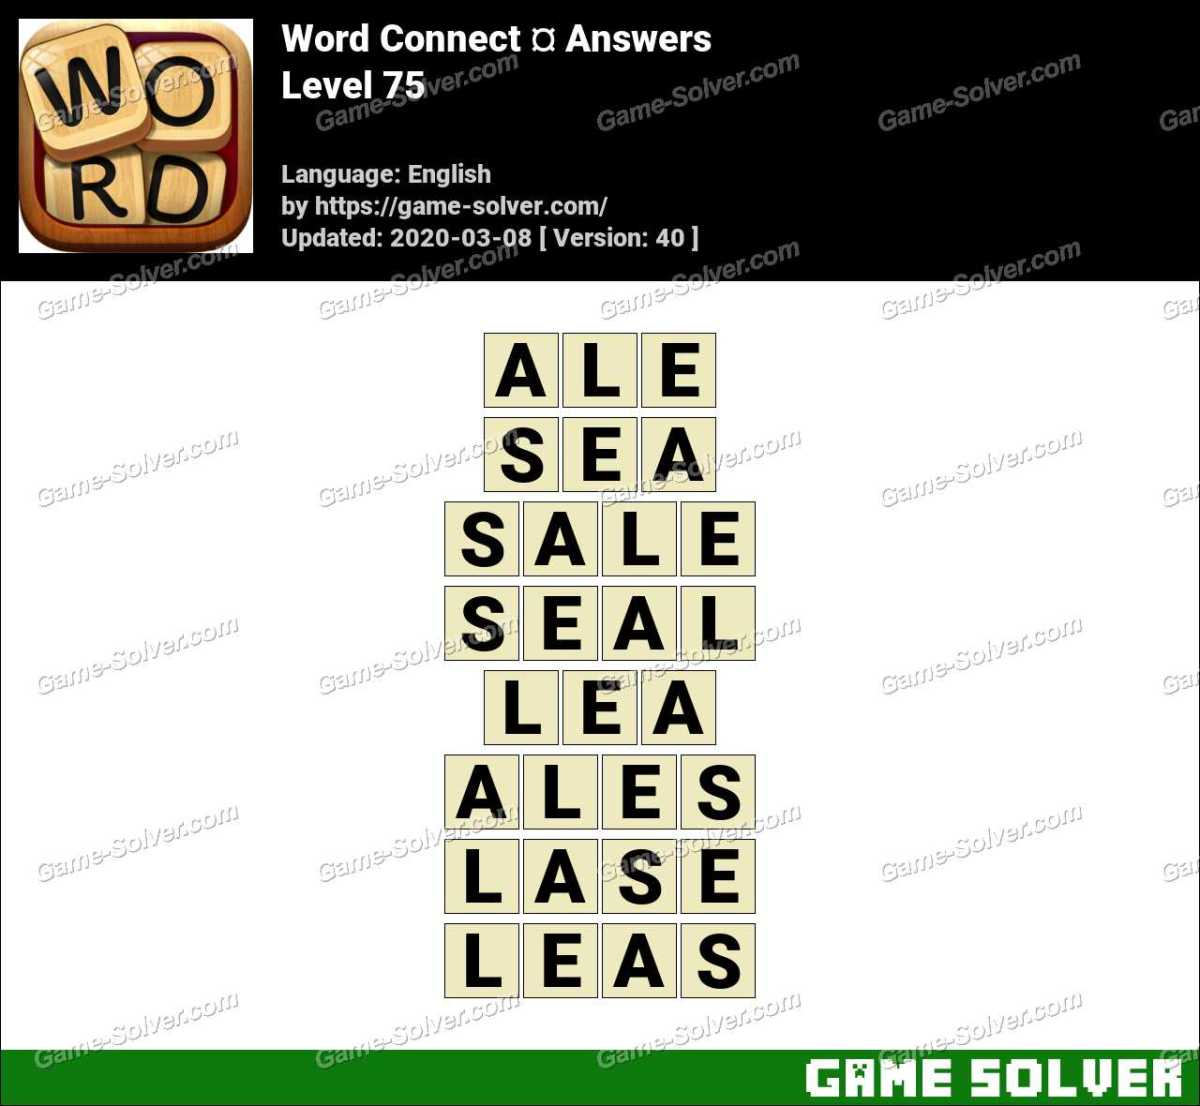 Word Connect Level 75 Answers